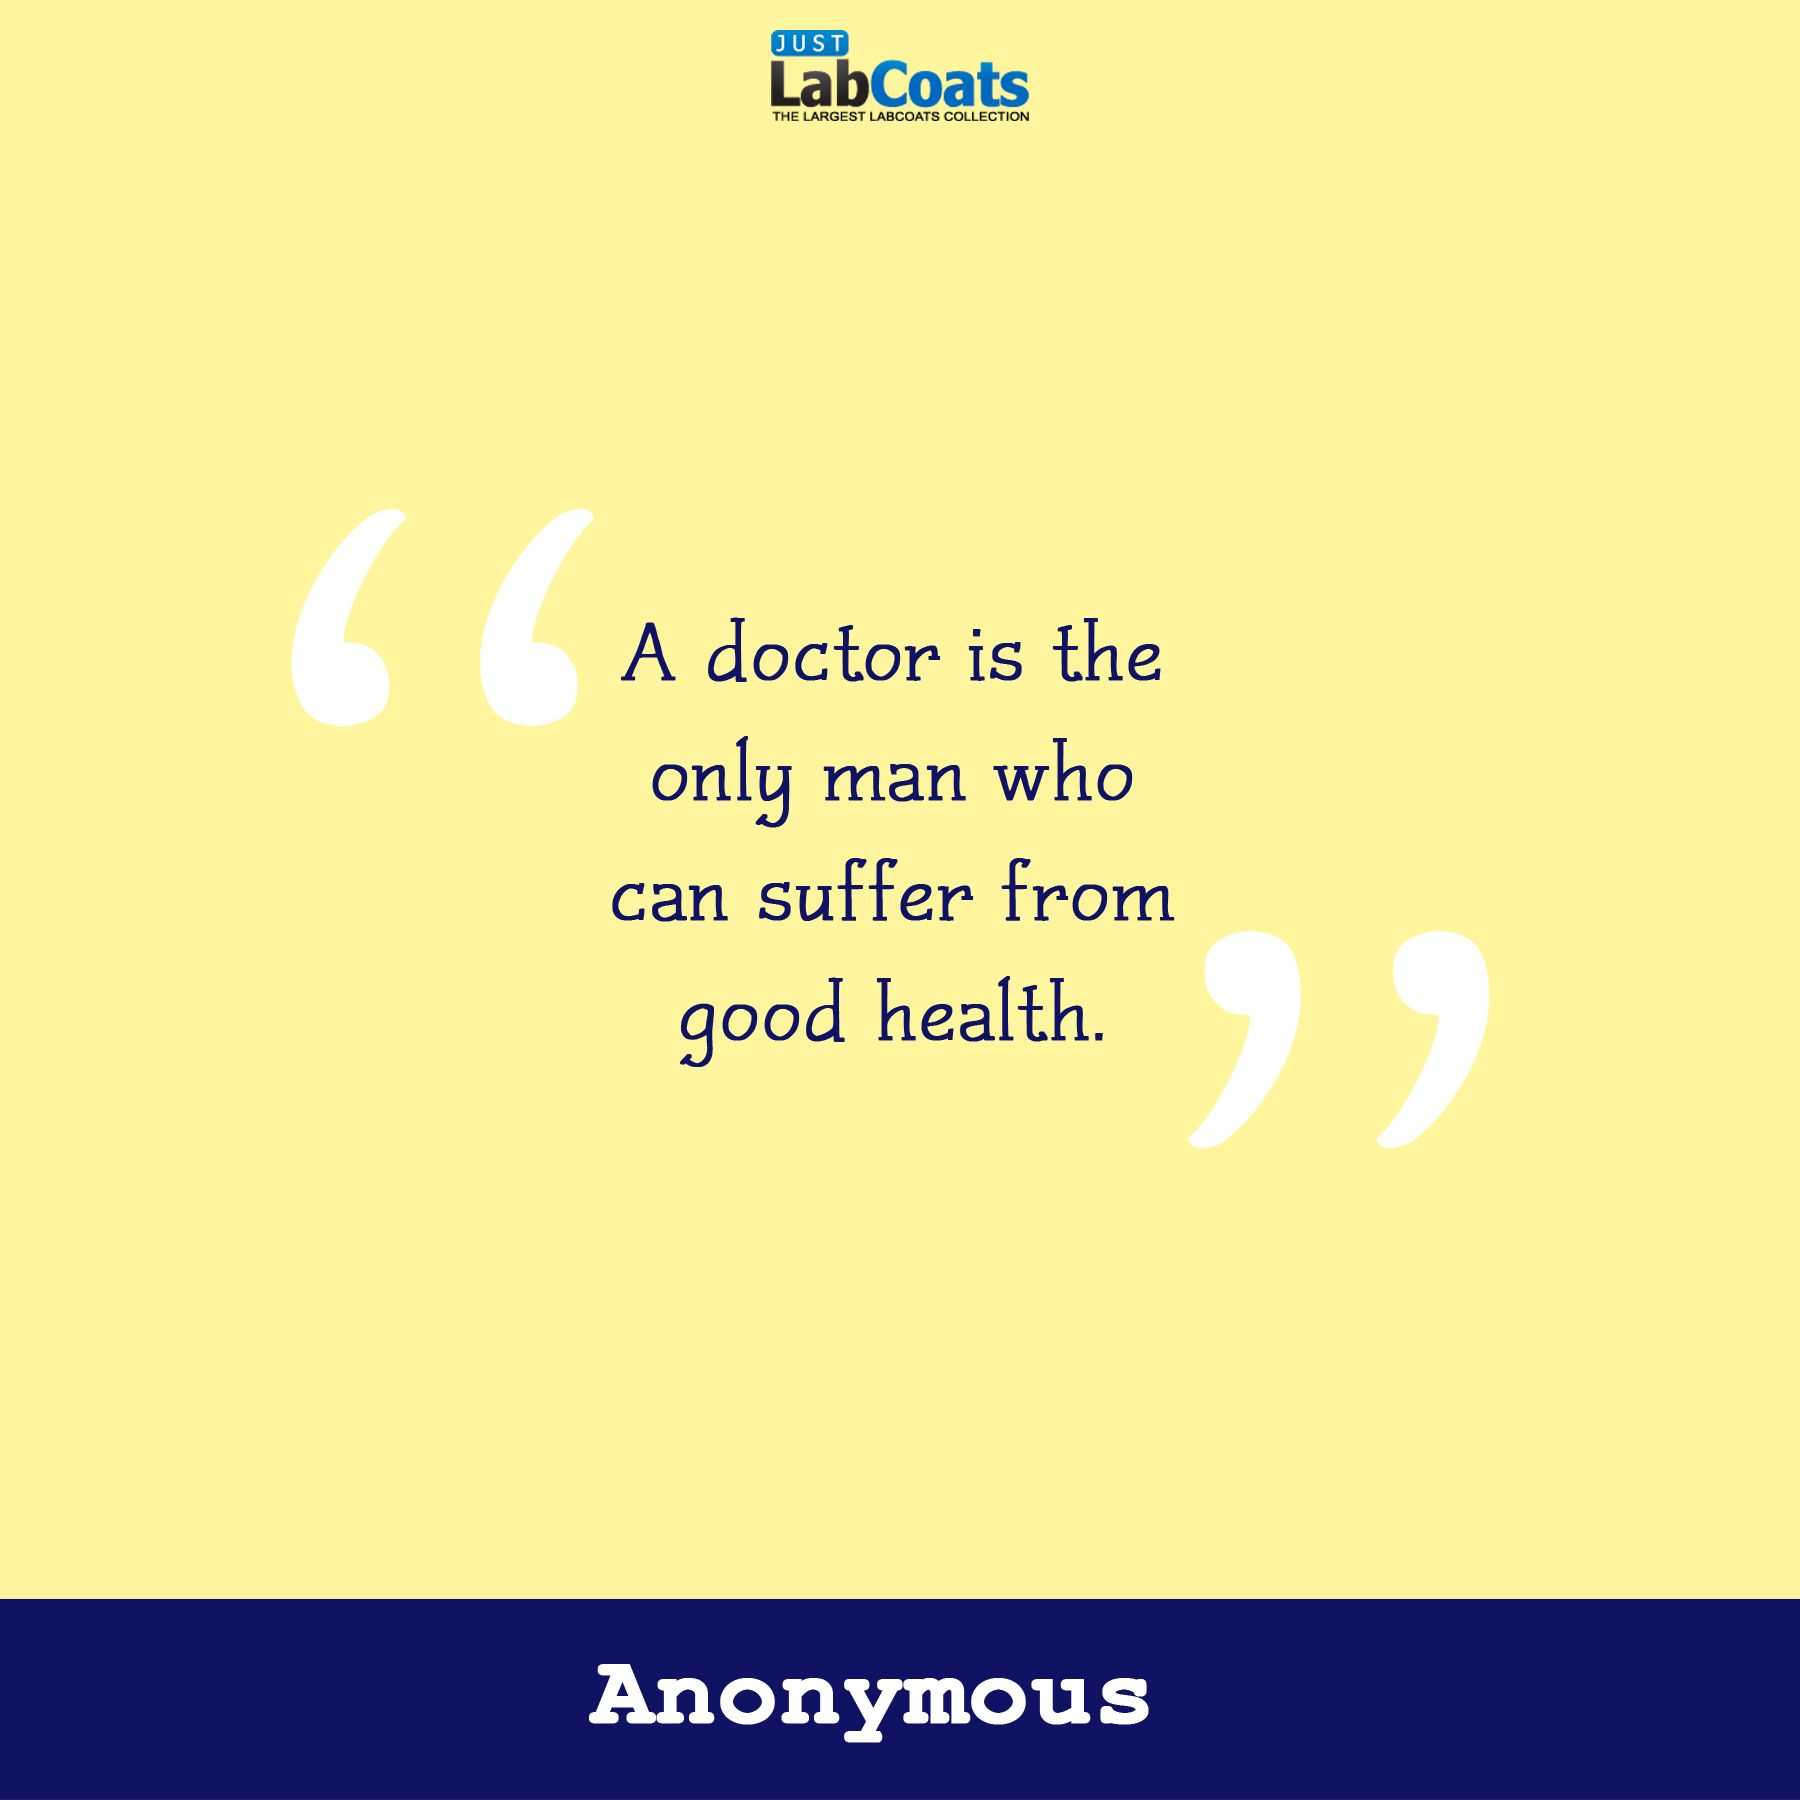 Healthcare Quotes A Doctor Is The Only Man Who Can Suffer From Good Health